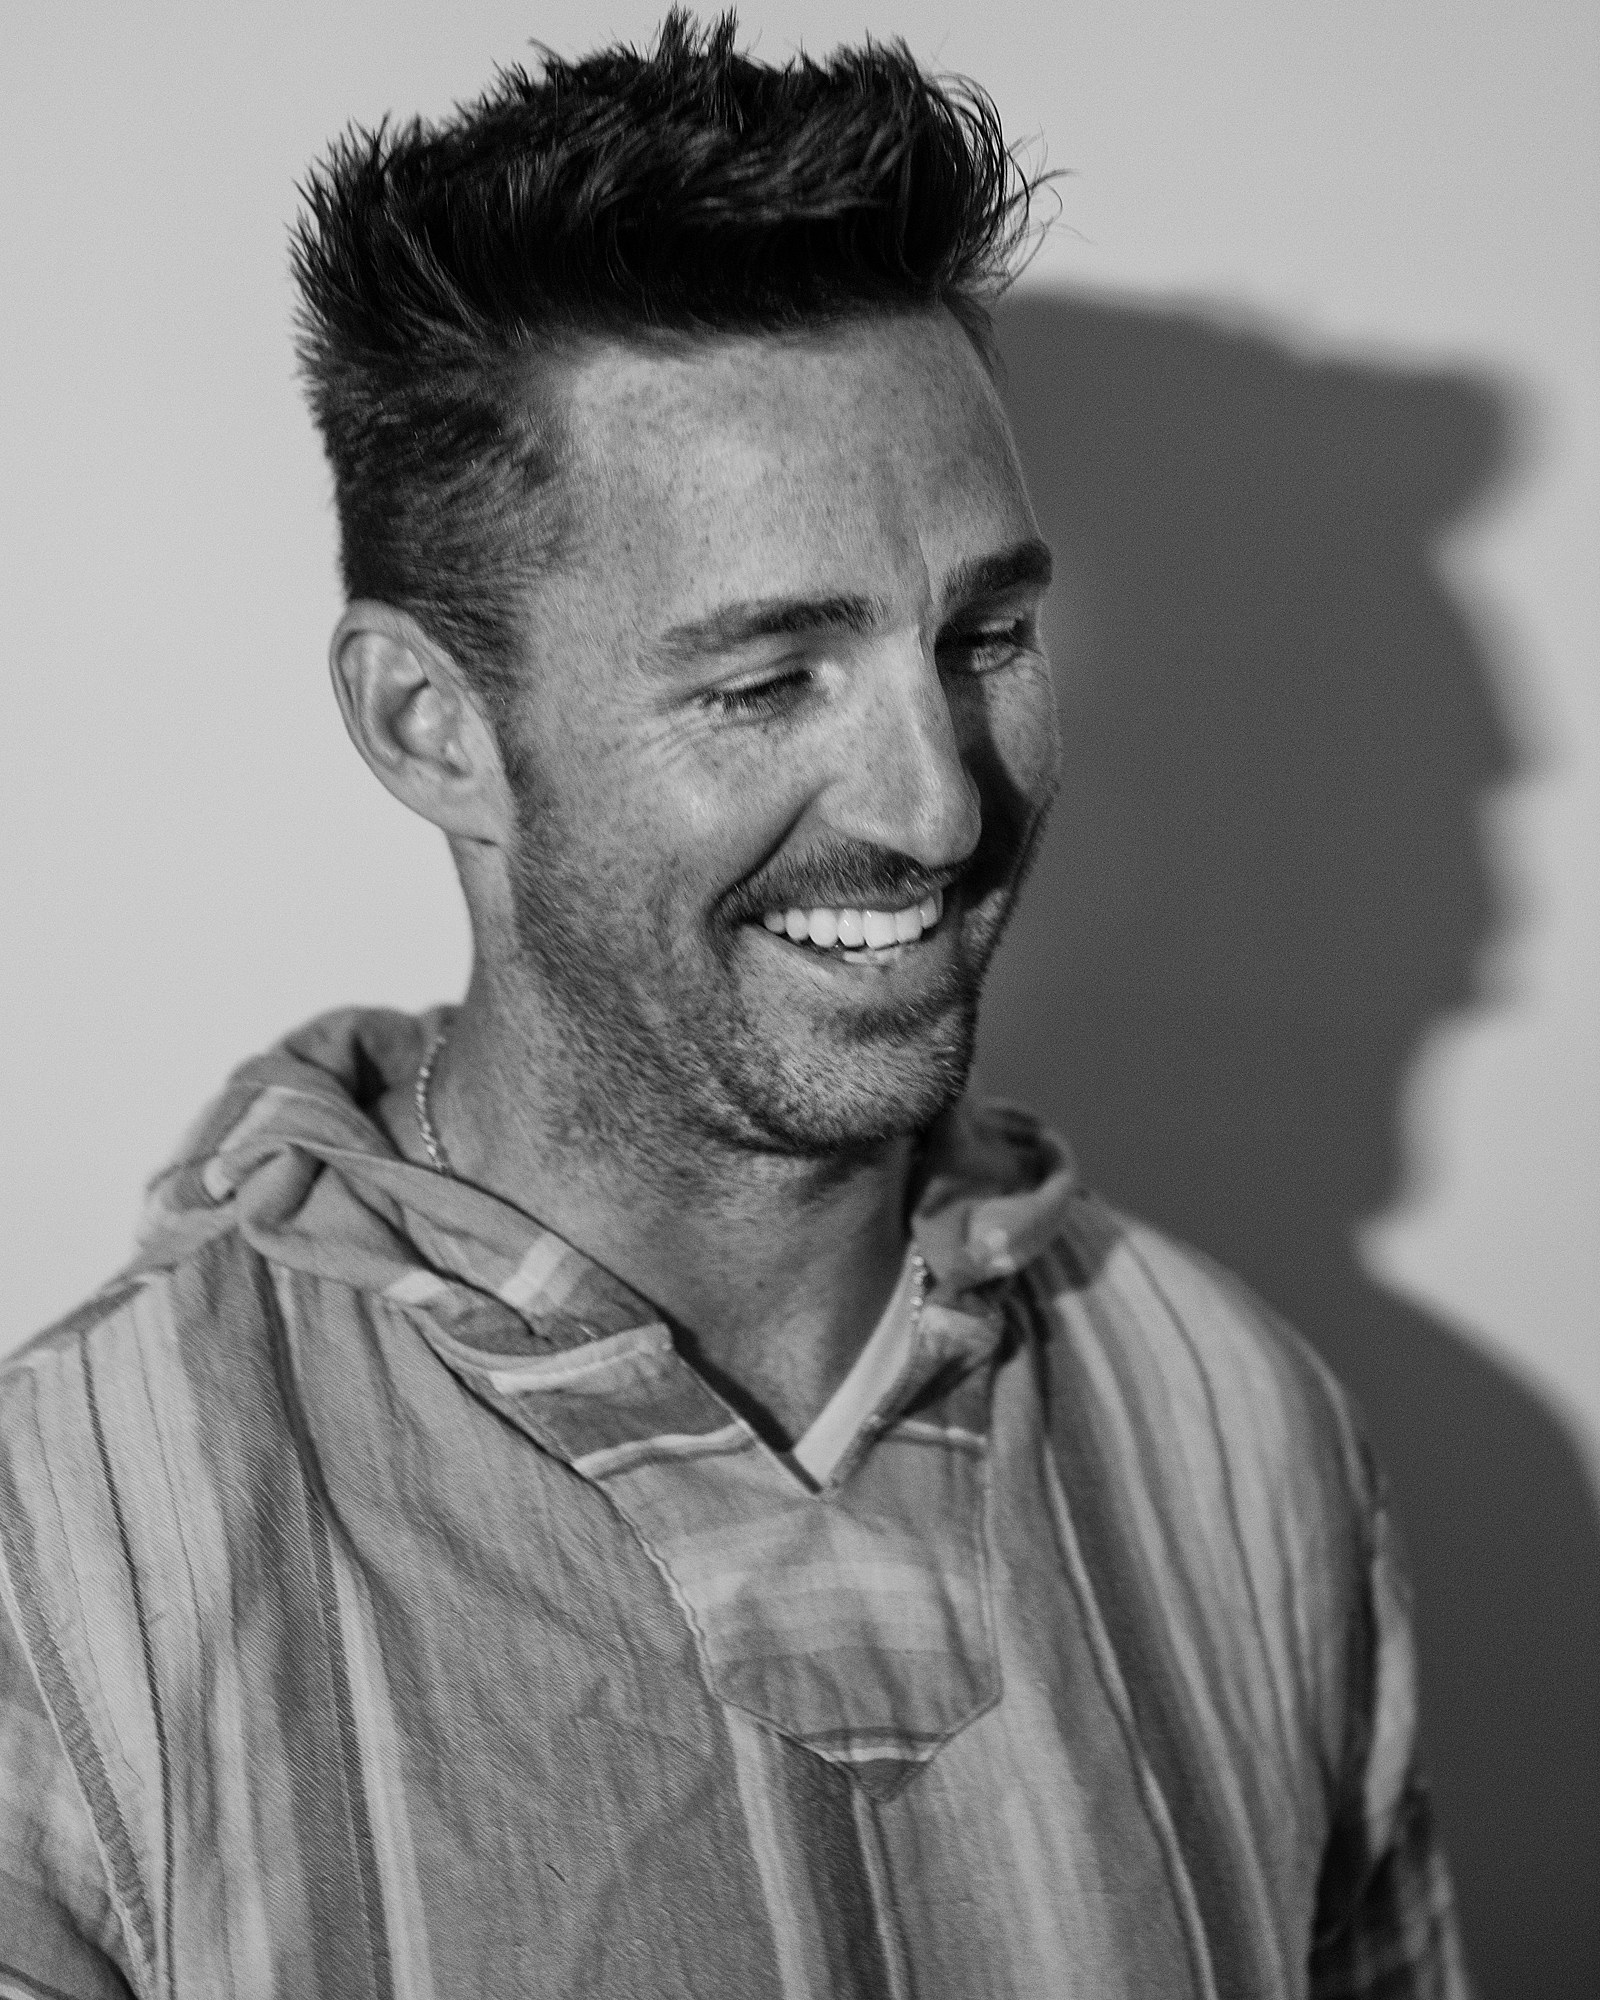 Jake Owen List Of Songs Great jake owen releasing greatest hits album with new songs